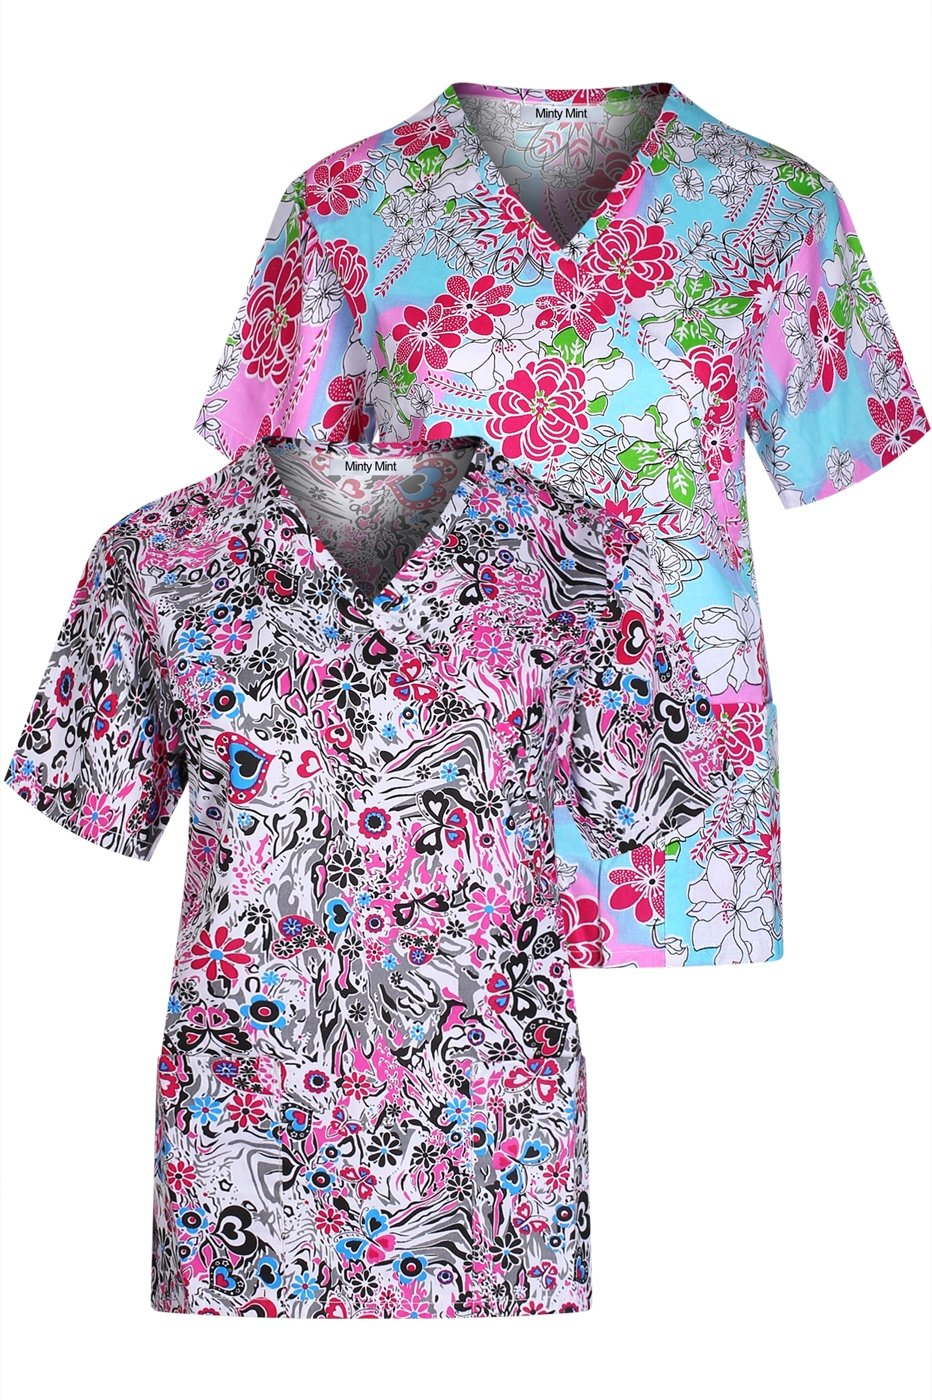 Minty Mint Women's Medical Scrub Printed V-Neck Top Multi Pack White Blue XS(452)